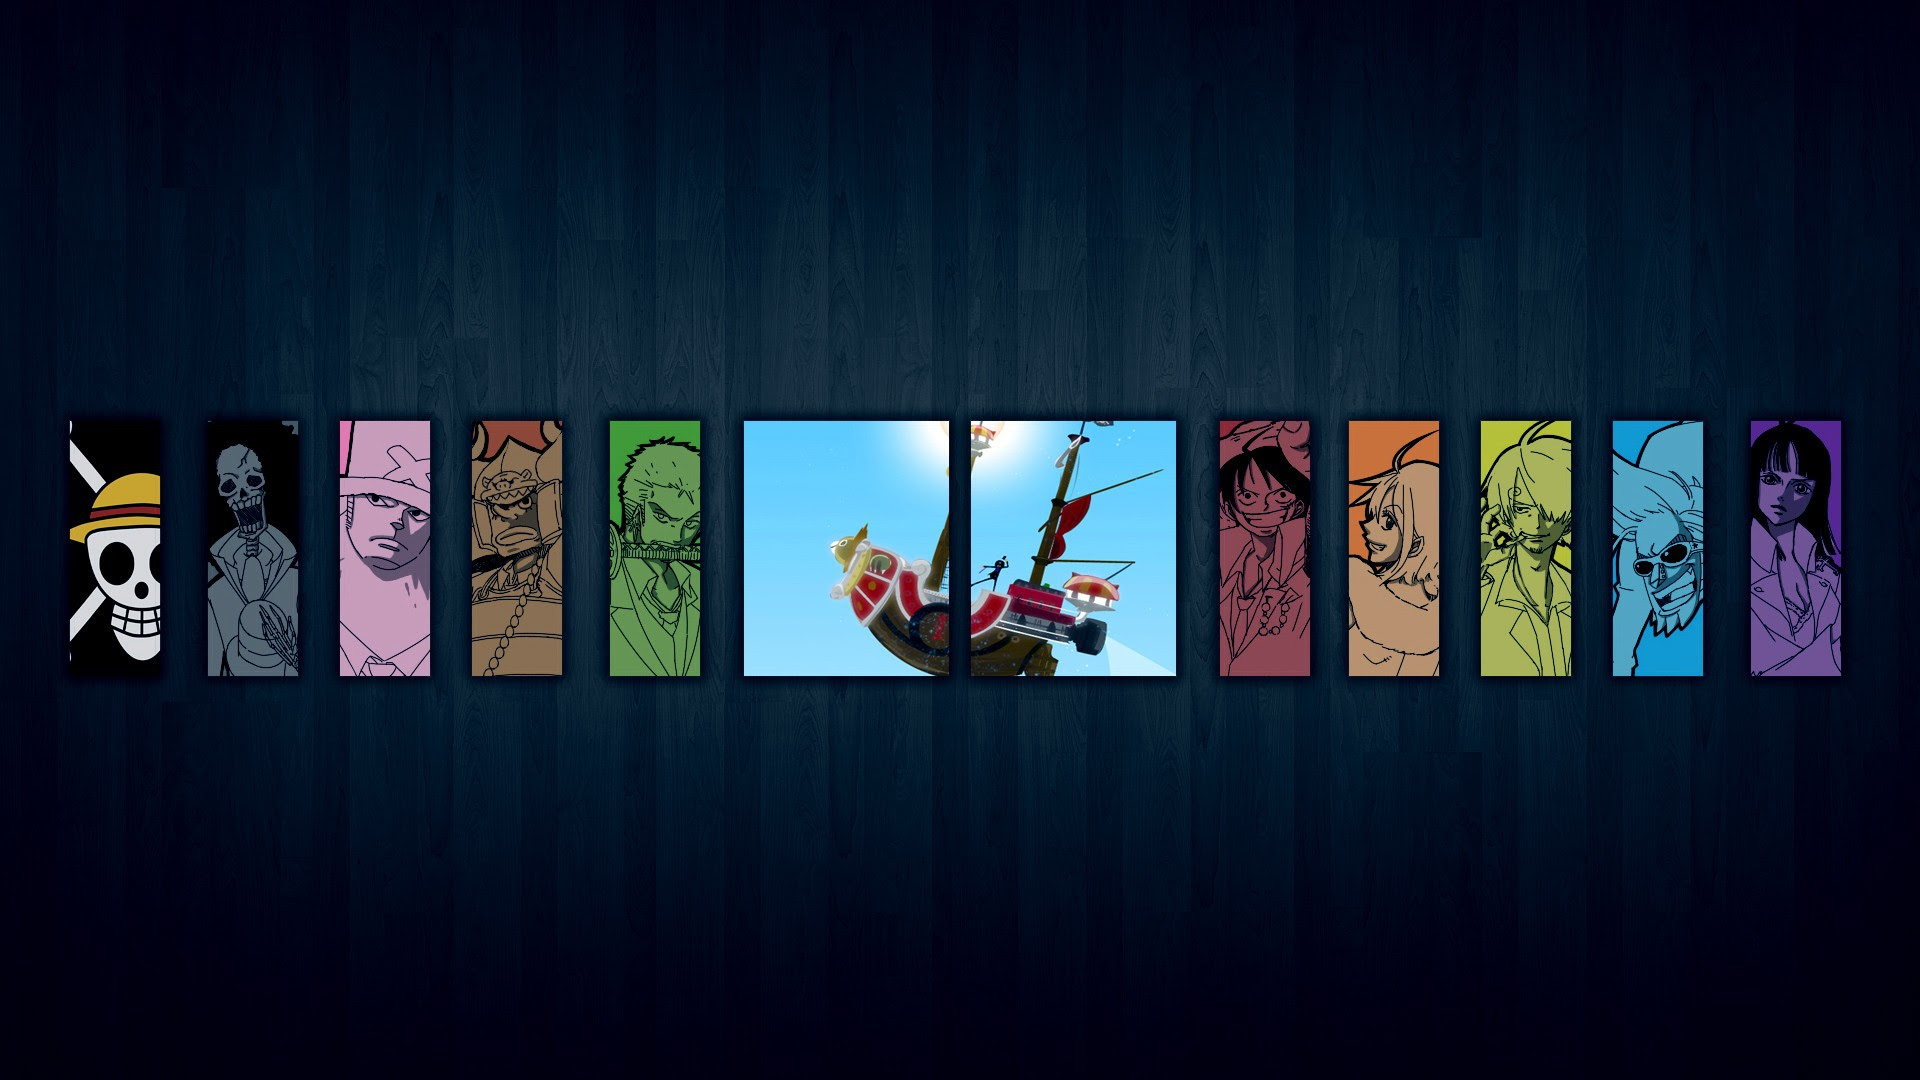 One Piece 1920x1080 Wallpaper Anime One Piece Hd Desktop Wallpaper